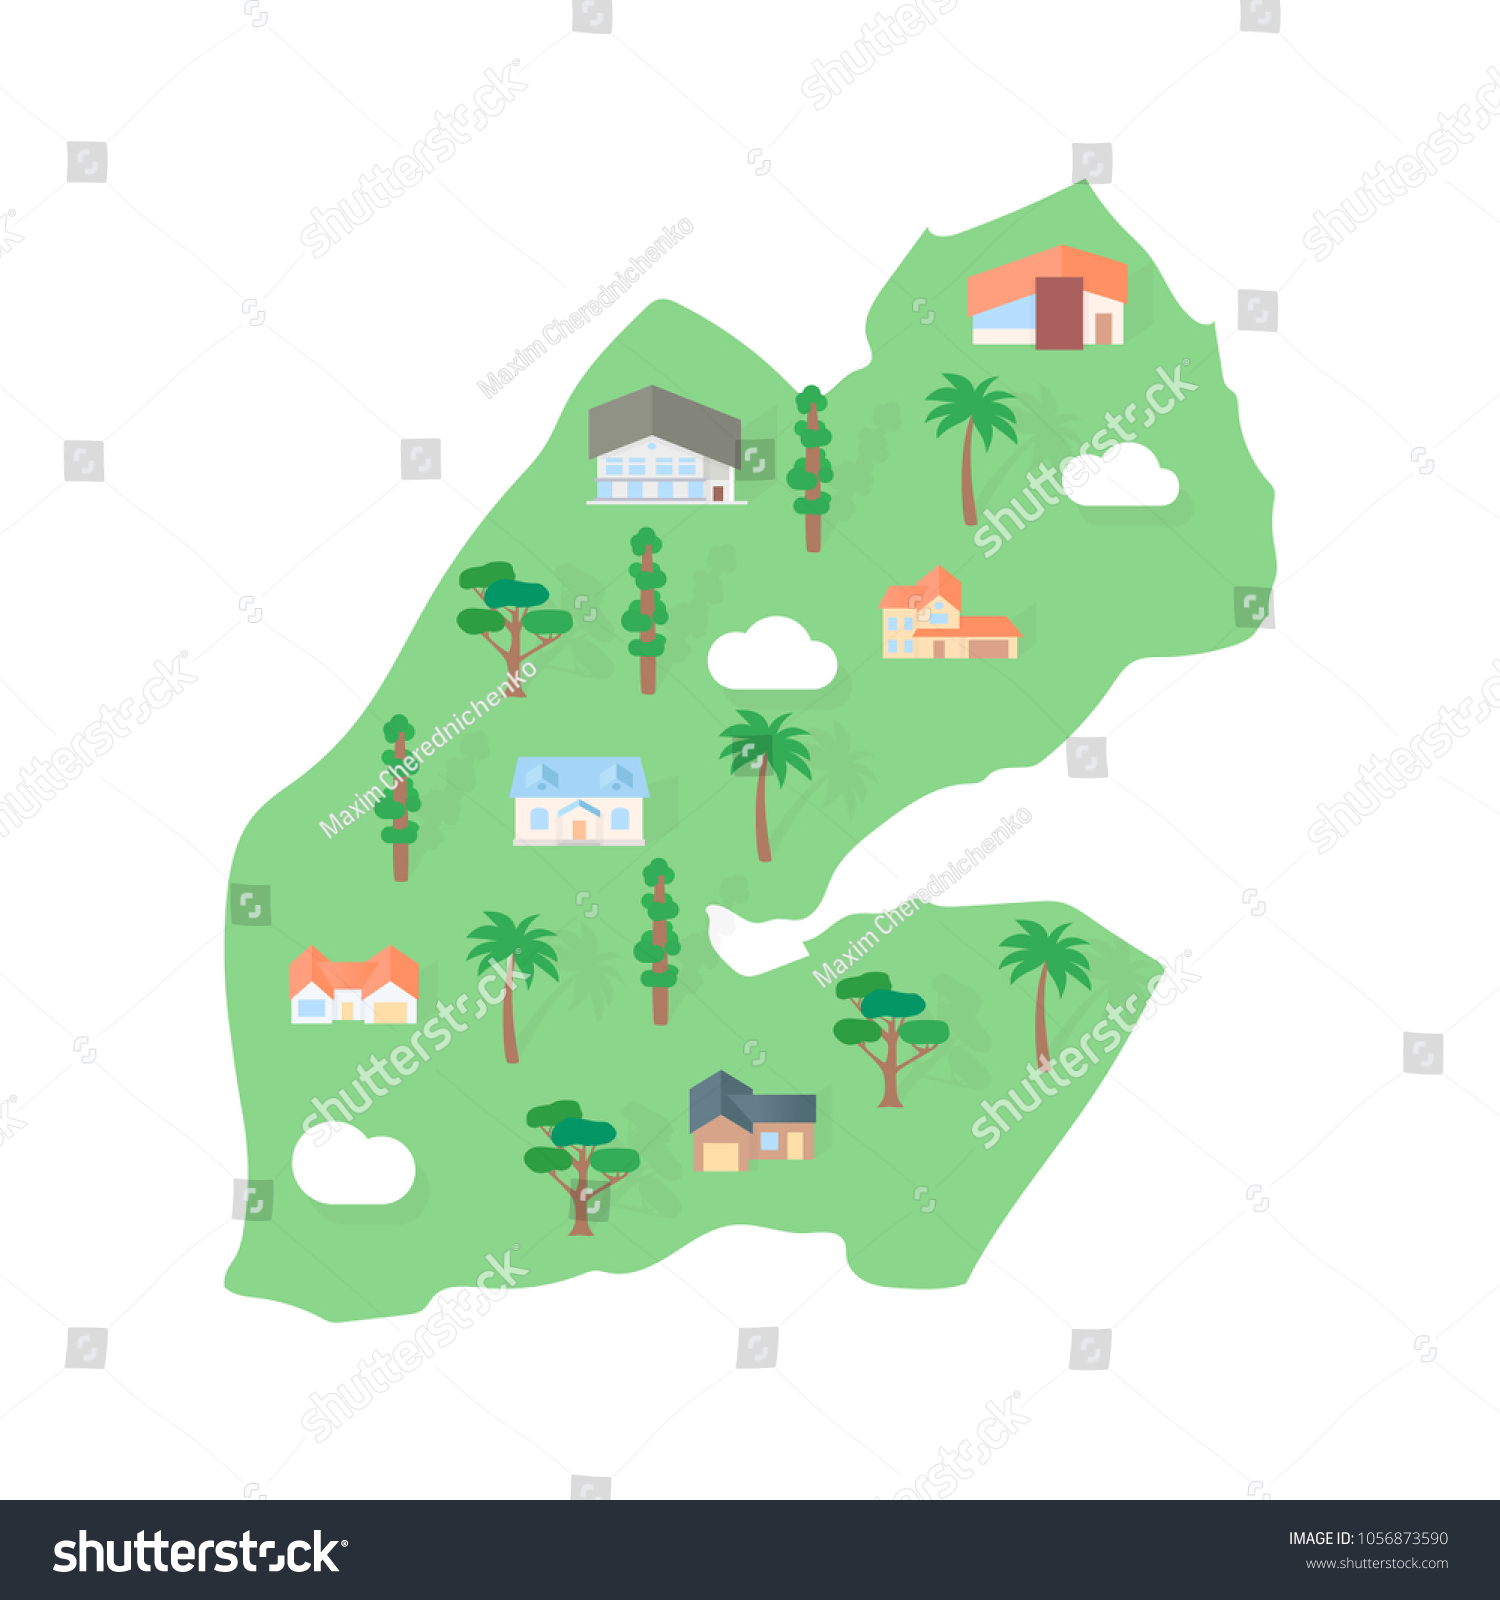 Djibouti African Country Map Real Estate Stock Vector (Royalty Free ...